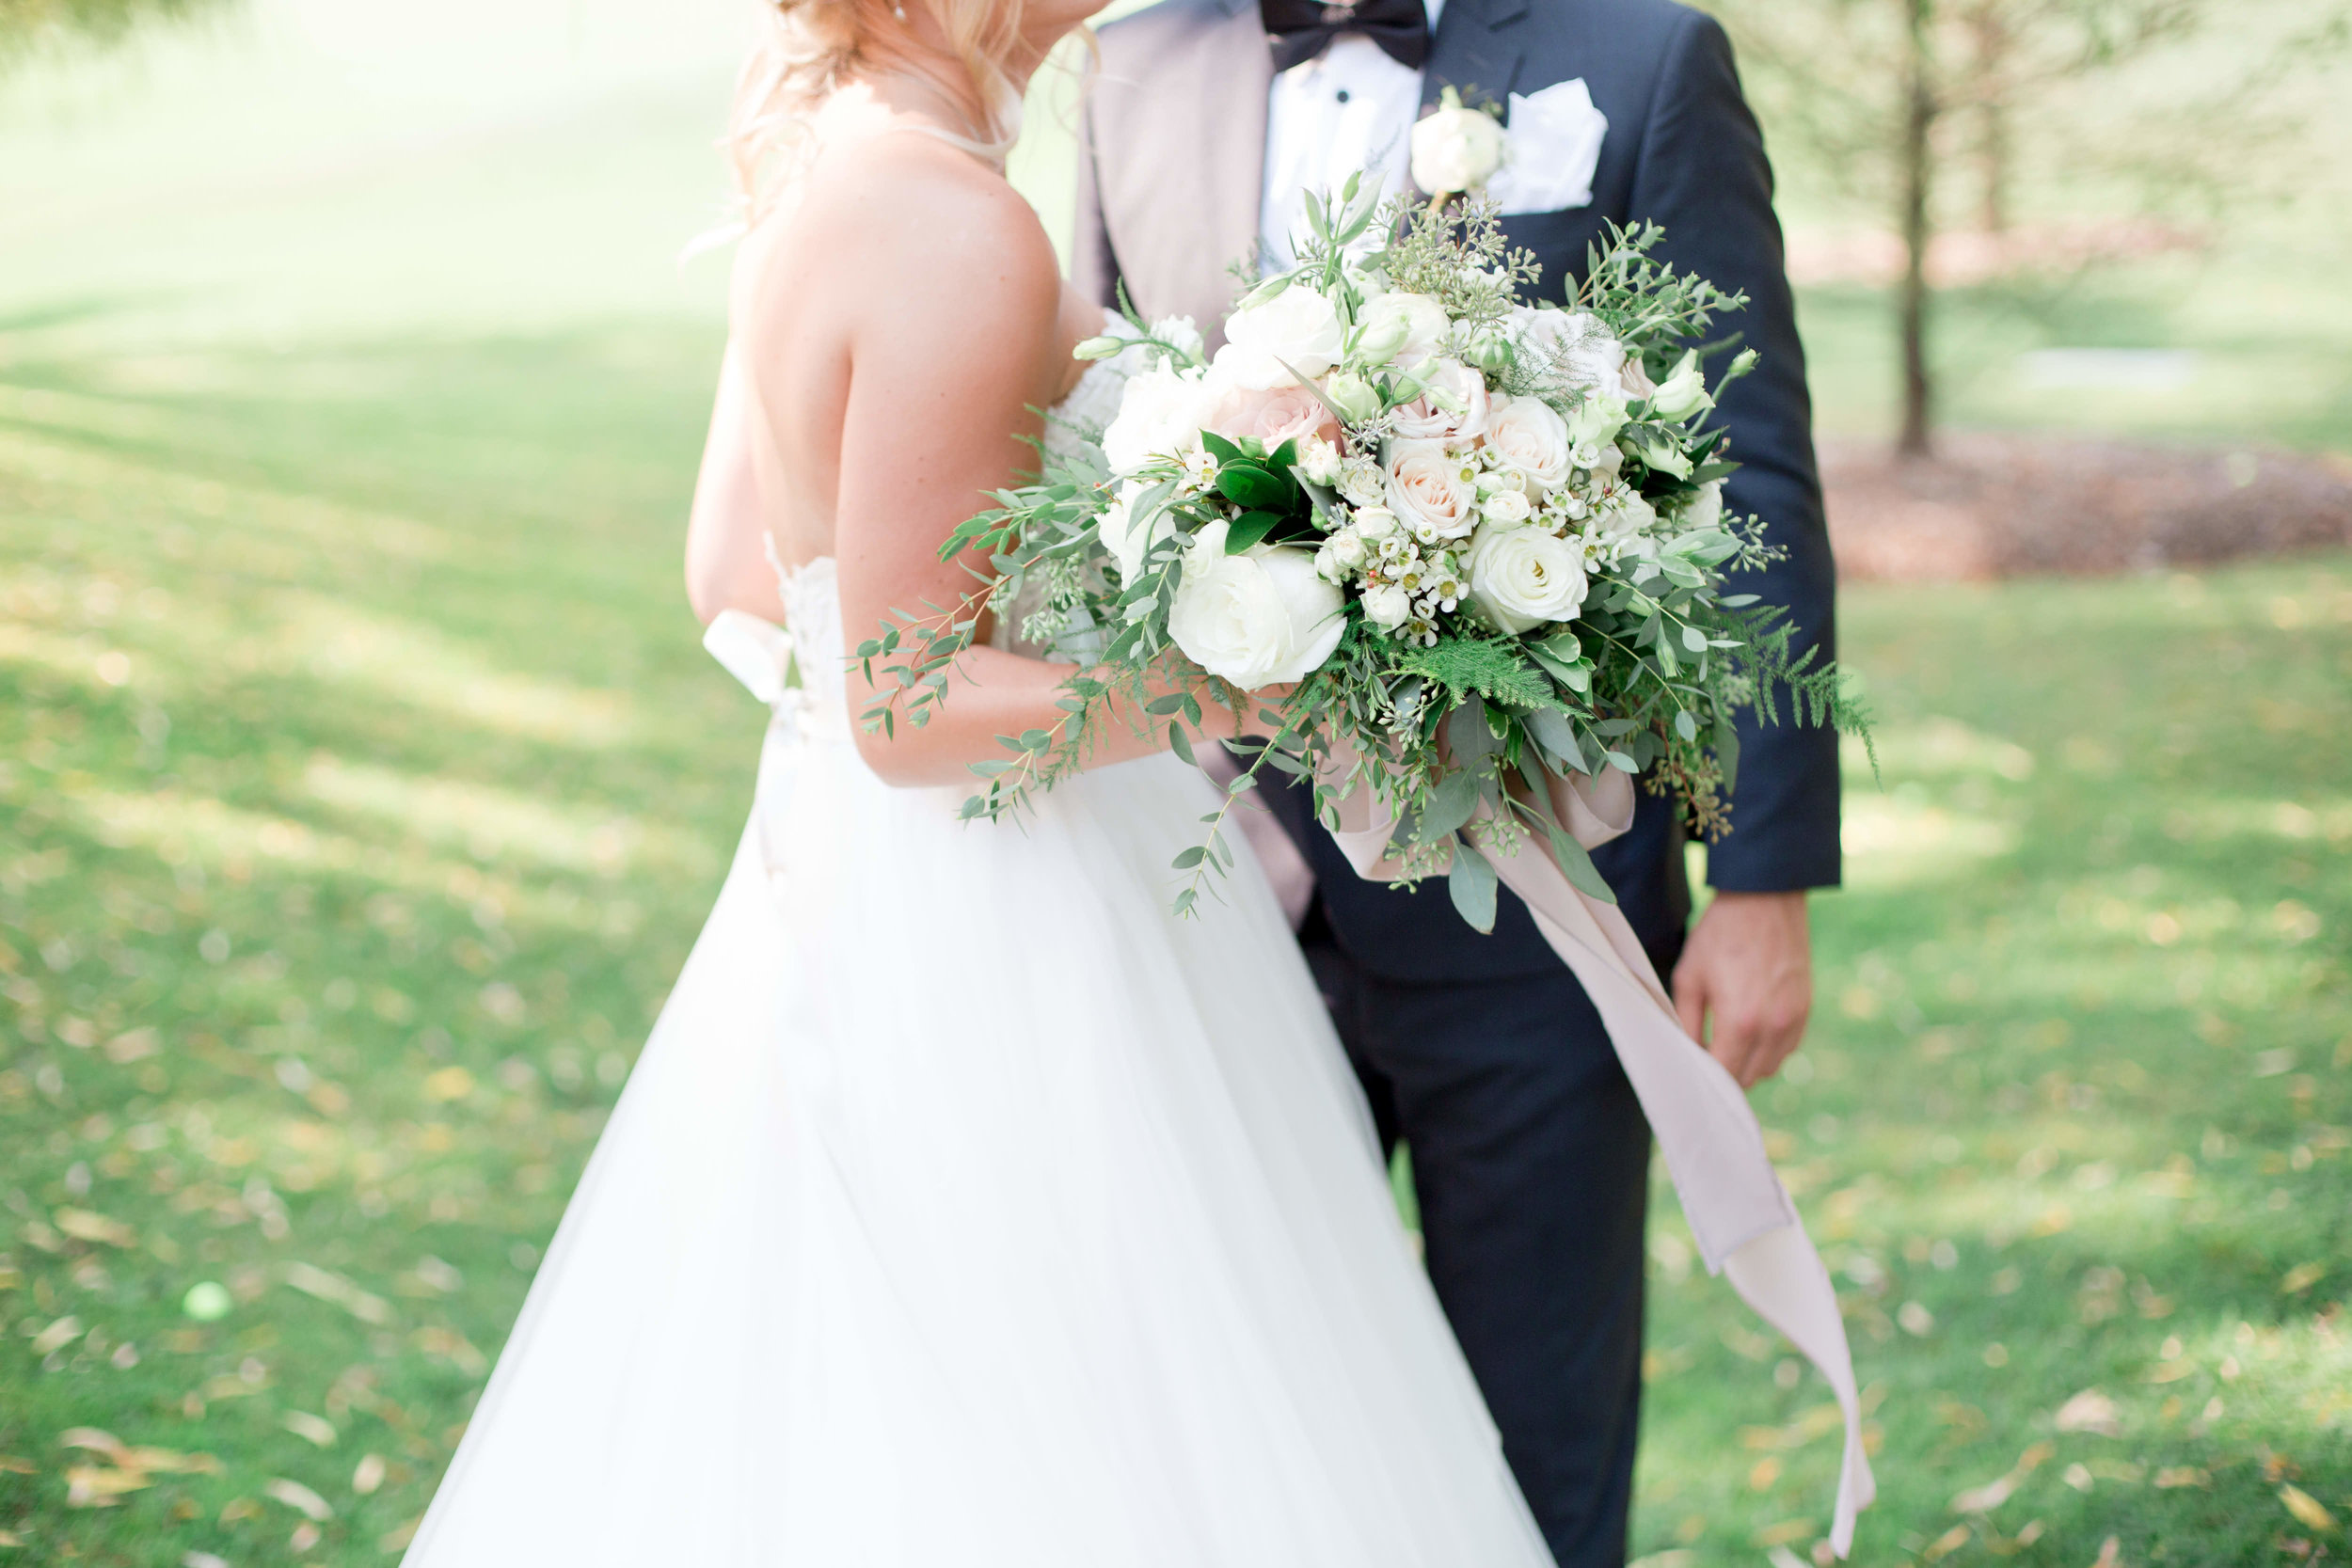 Kelsey___Daniel___High_Res_Finals___Daniel_Ricci_Weddings_182.jpg